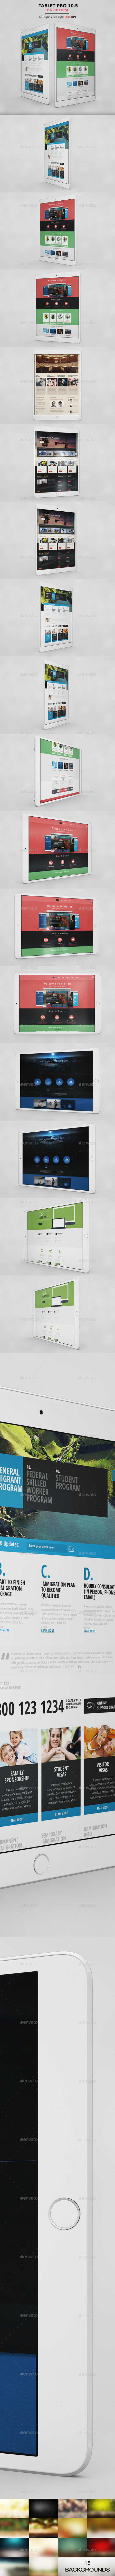 Tablet Pro 10.5 App MockUp 2017 Vol1 - Product Mock-Ups Graphics